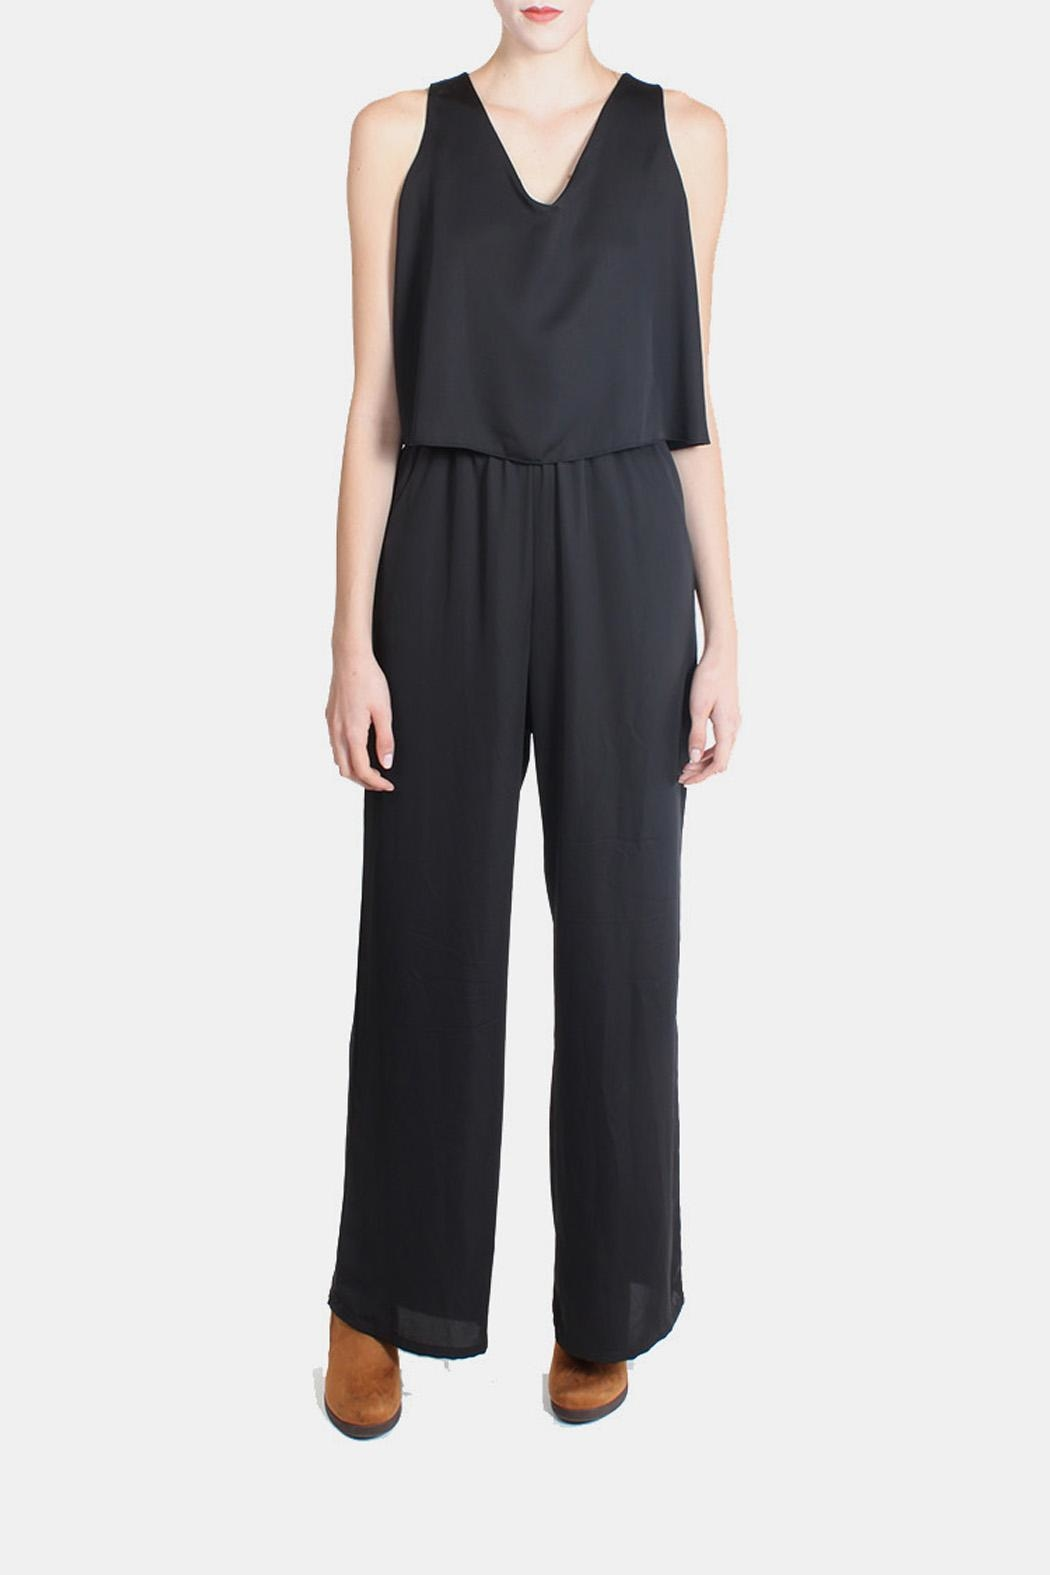 Tyche Flutter Jumpsuit In Black - Main Image